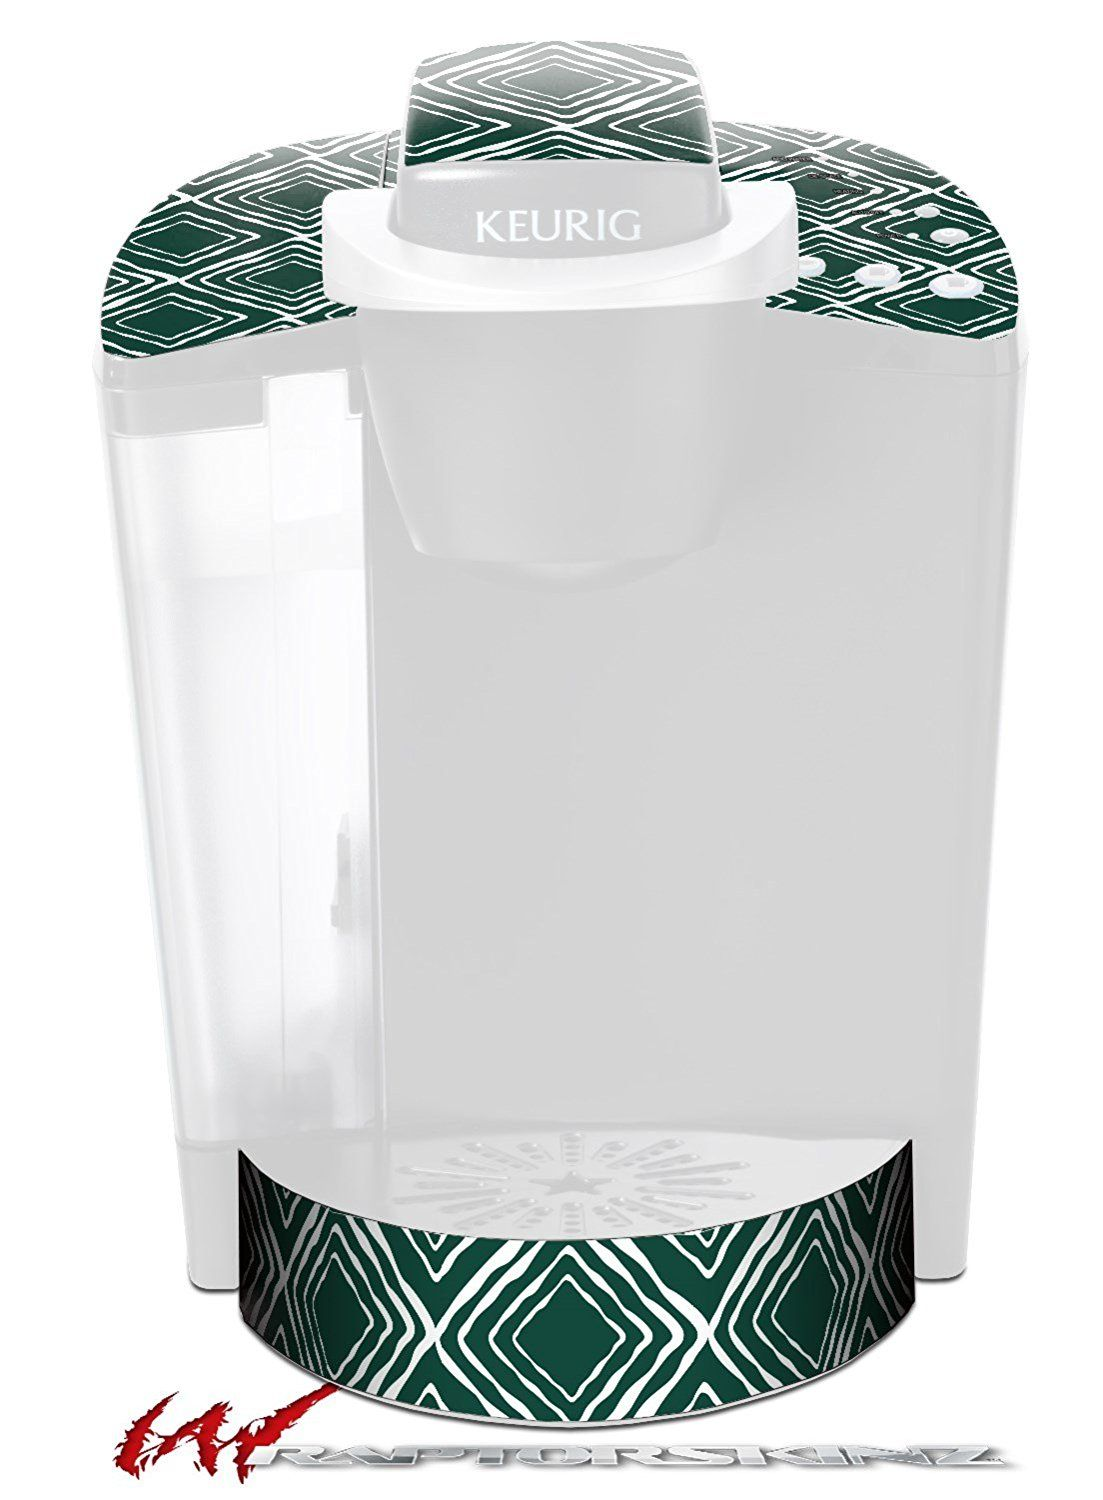 Wavey Hunter Green Decal Style Vinyl Skin Fits Keurig K40 Elite